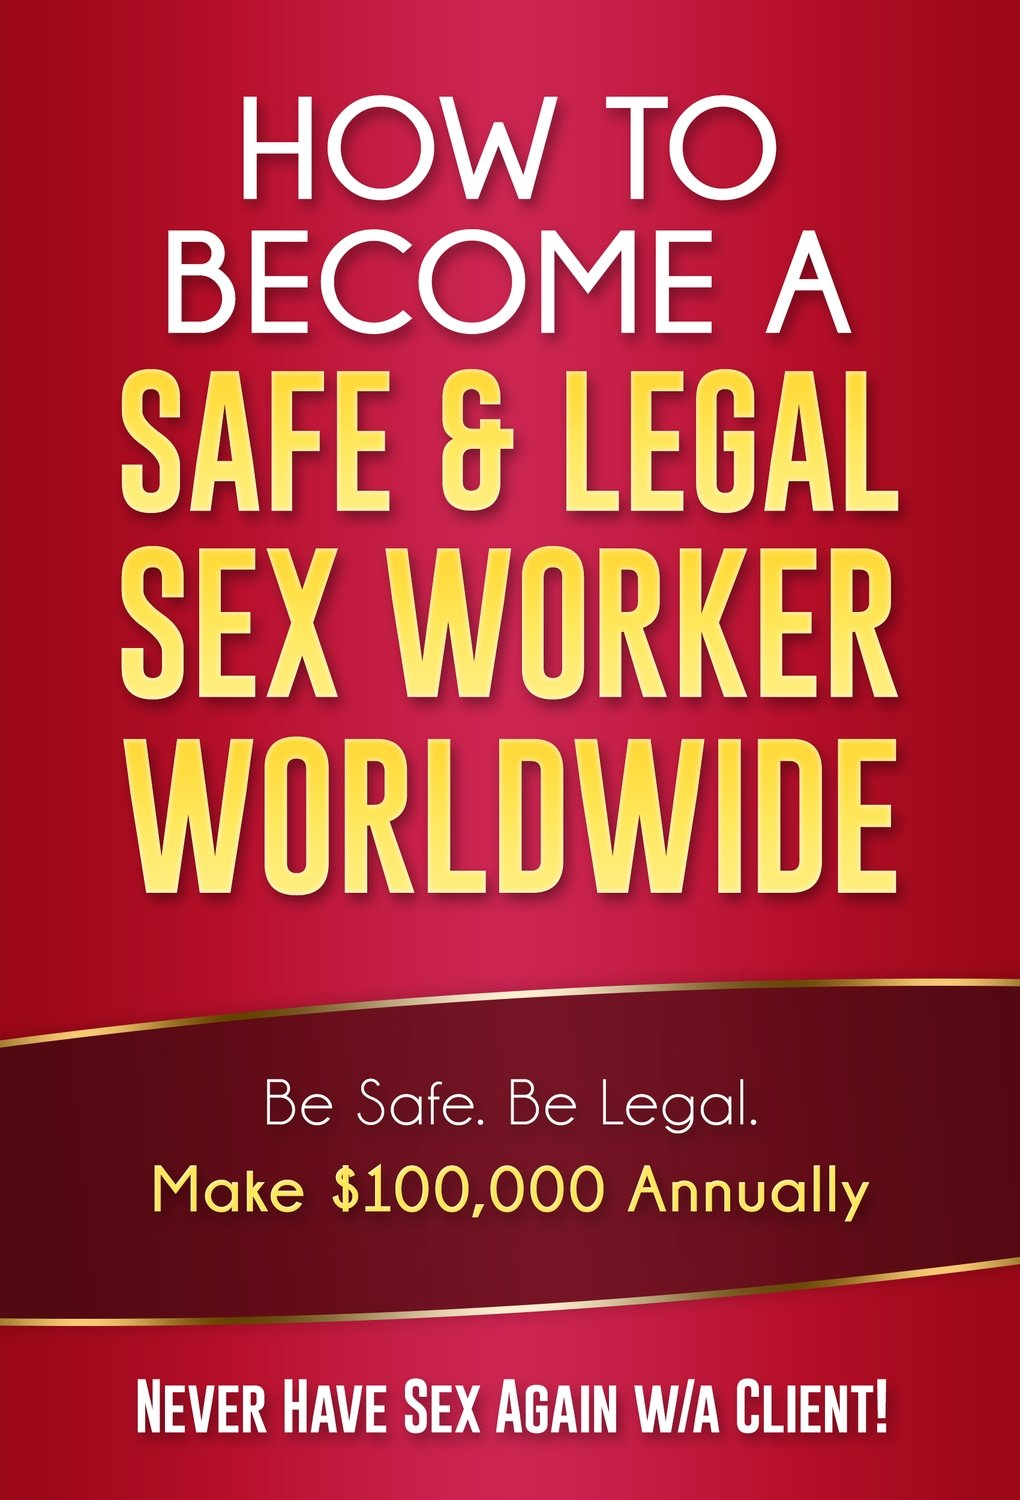 Become a Legal Safe Sex Worker (Make $100,000 Annually) without the Sex! (1.2 Million Views)